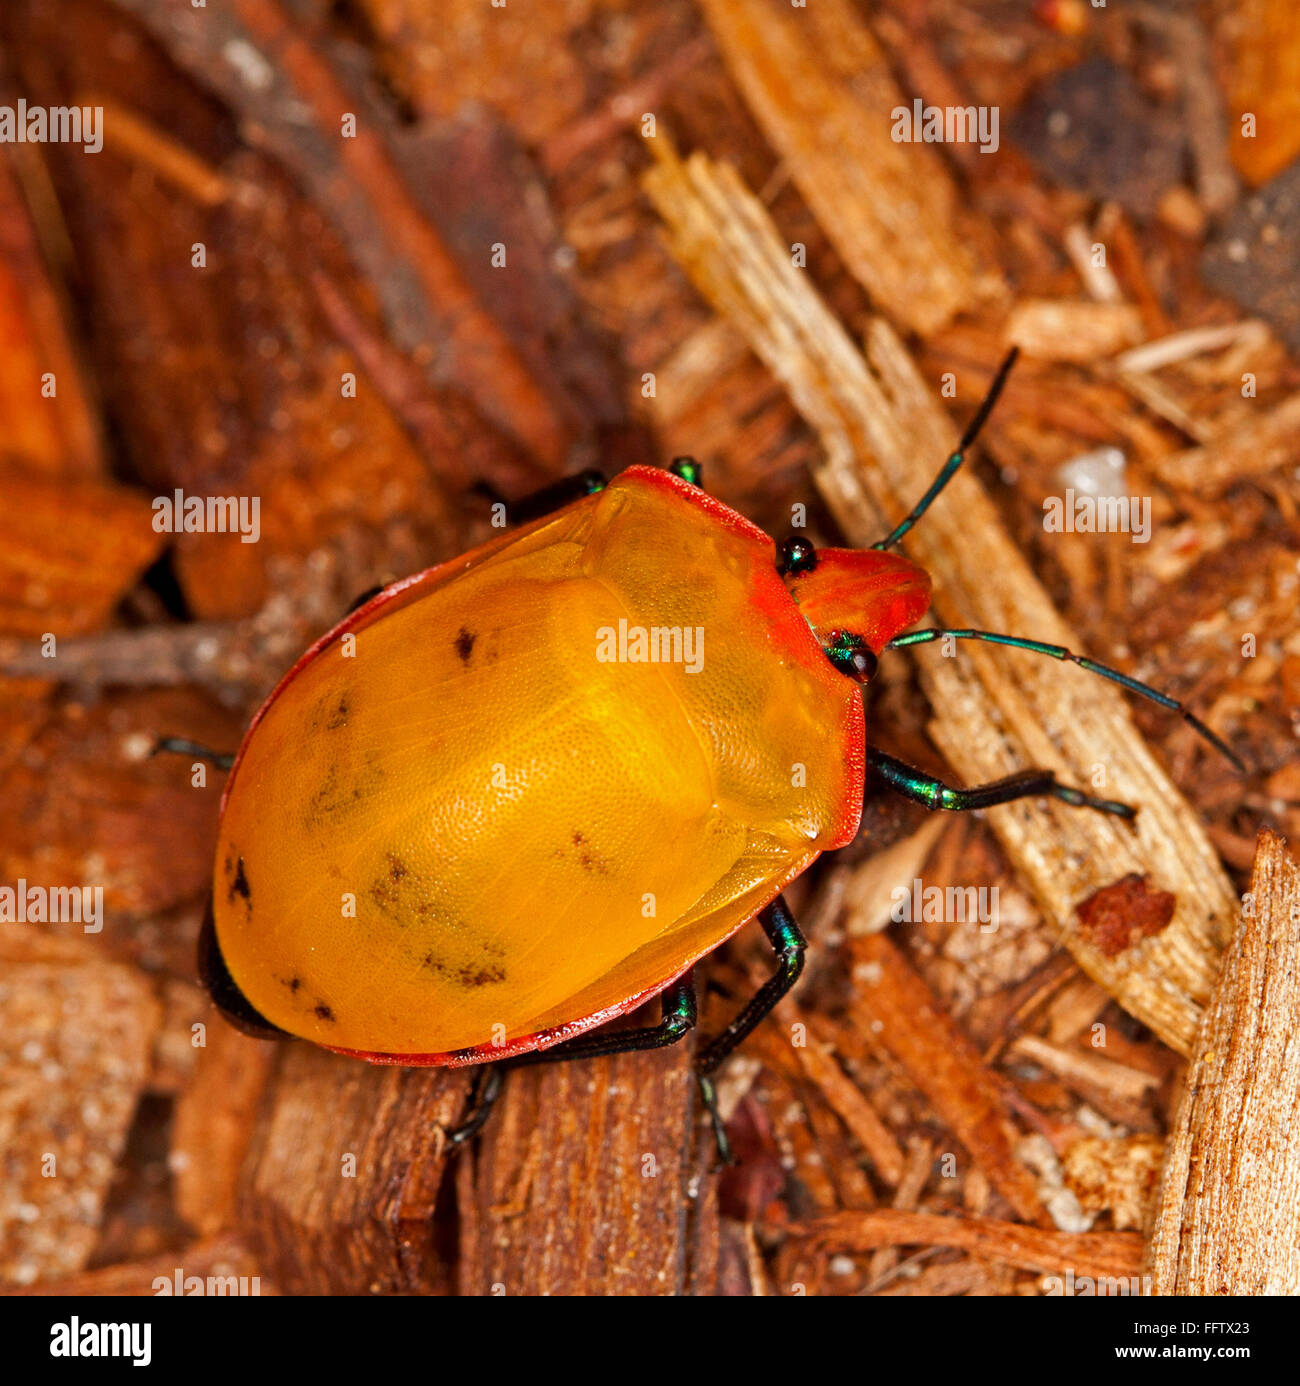 Spectacular vivid orange & red insect, harlequin / jewel bug, Tectocoris diophthalmus among decaying leaves - Stock Image